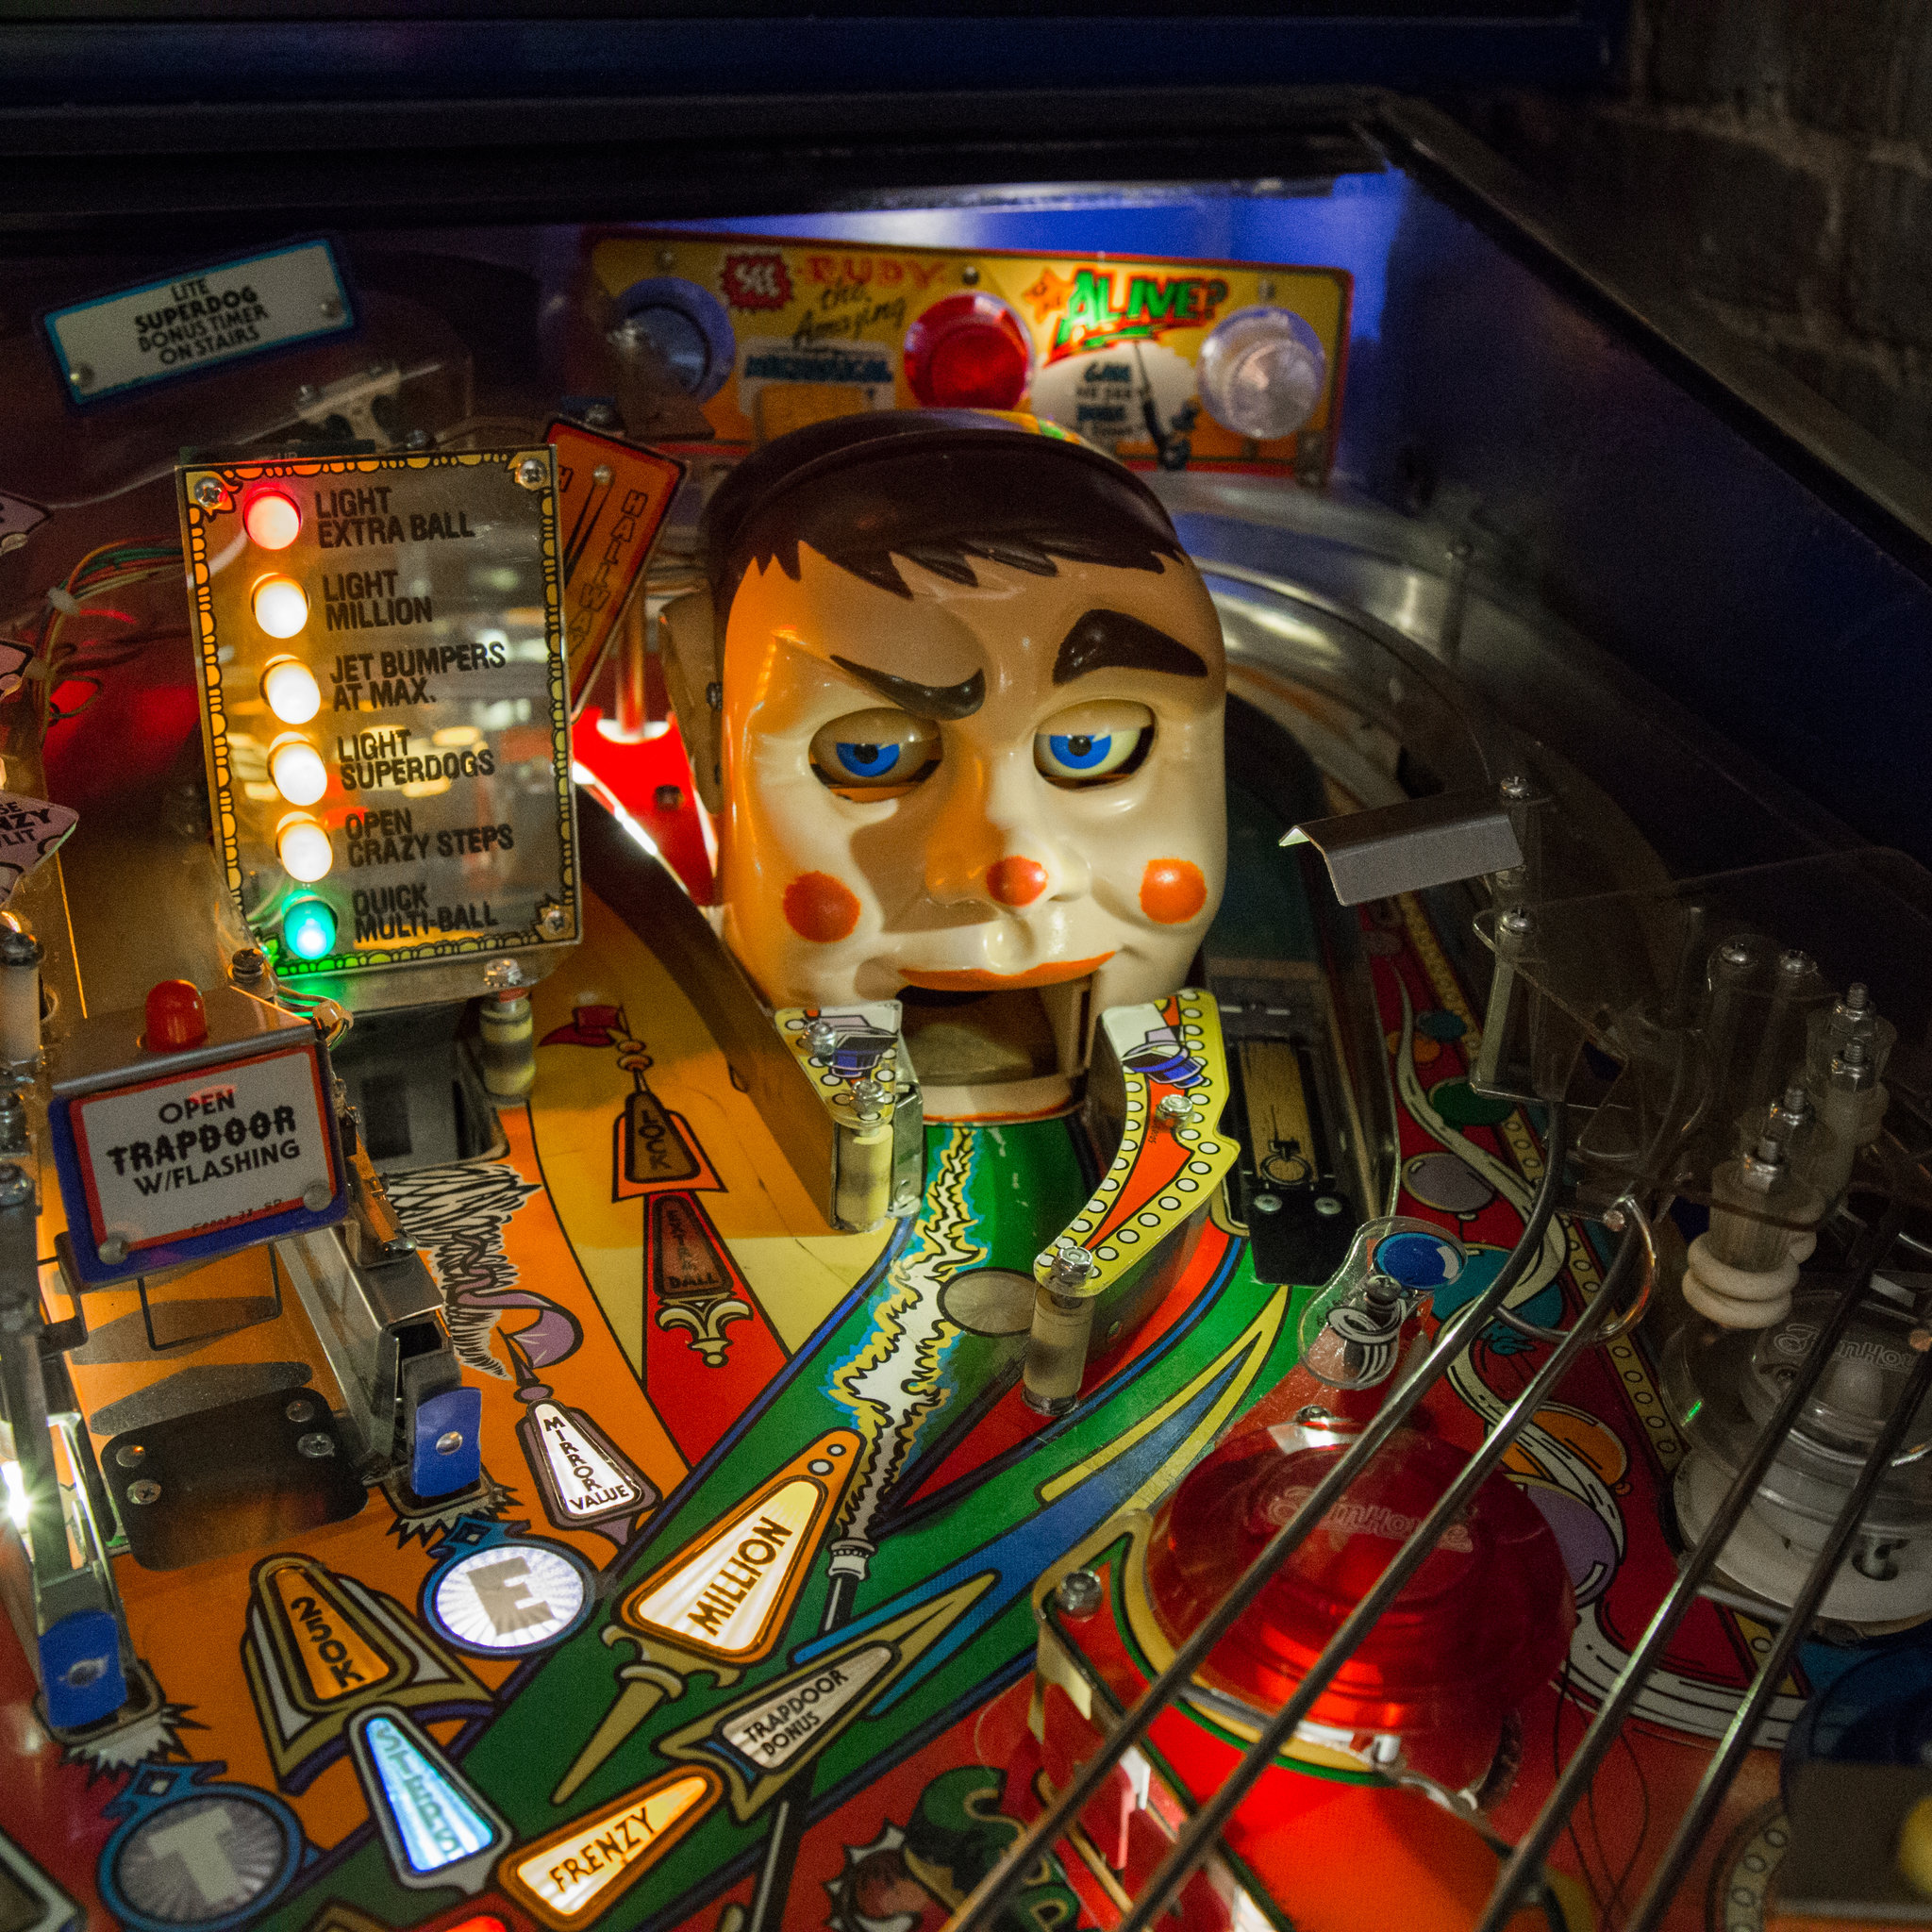 A detail of the Fun House pinball machine  | Viewing NYC